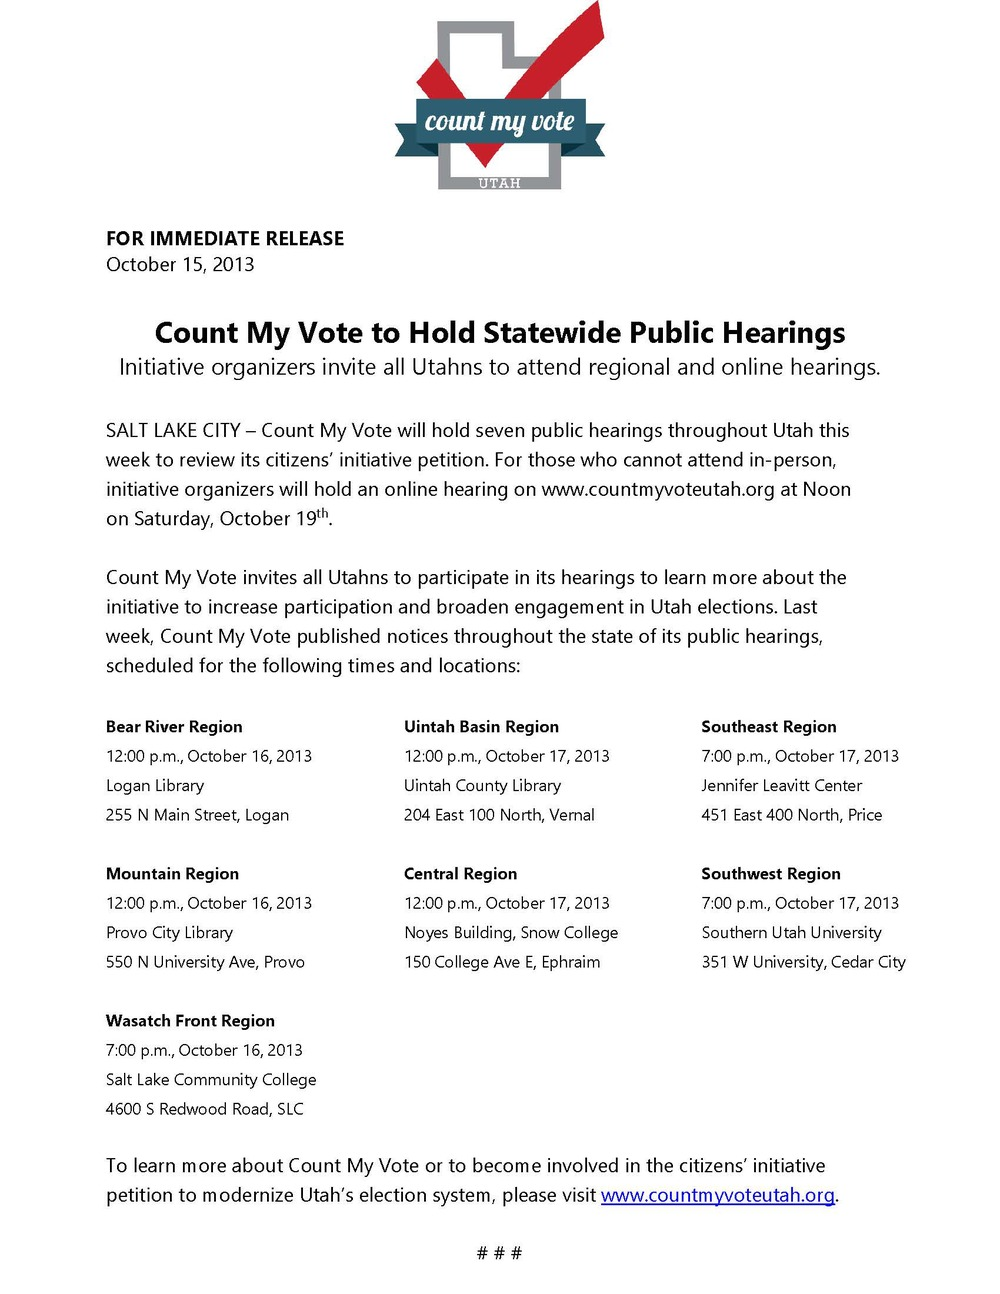 Count My Vote to Hold Statewide Public Hearings.jpg